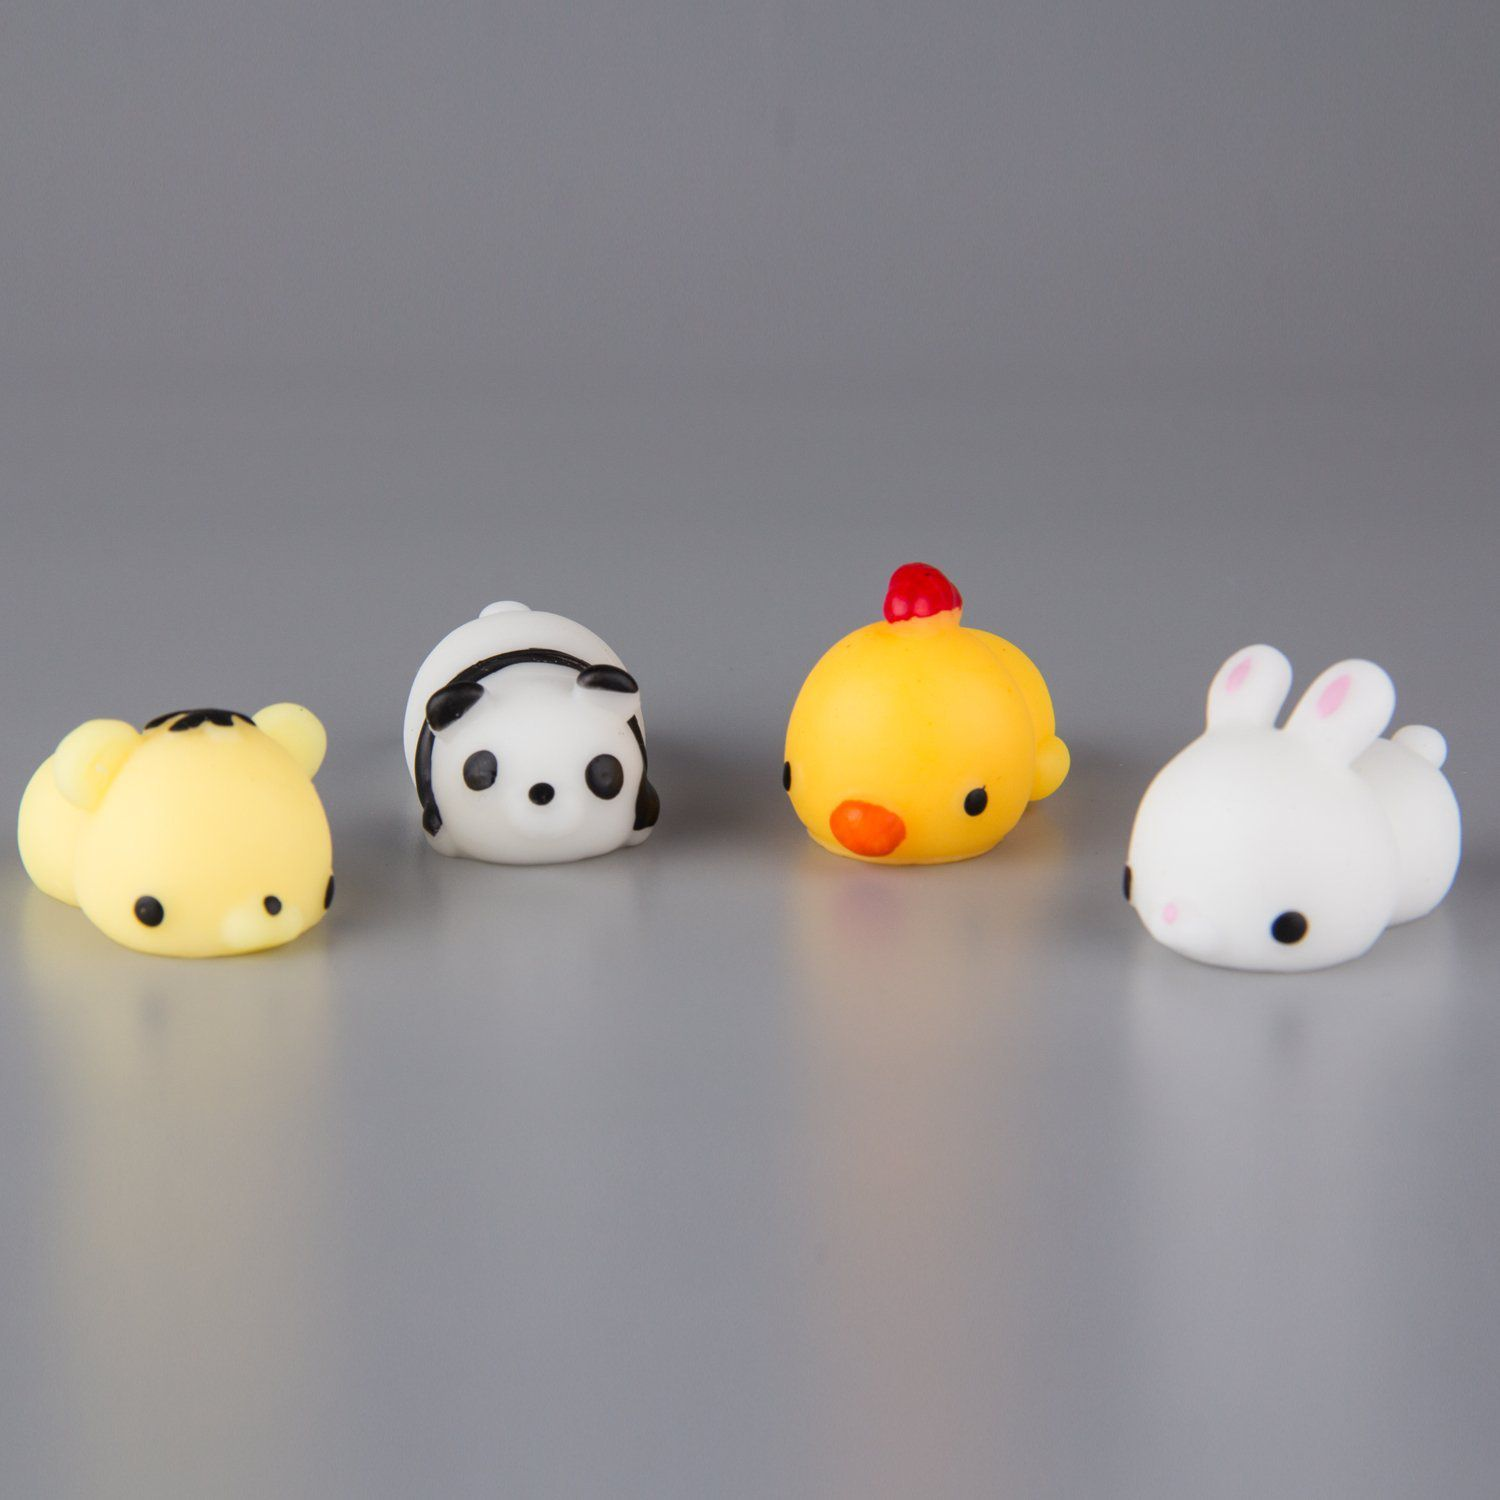 Cute Animal Squishy Kawaii Mini Soft Squeeze Toy Fidget Hand Decompression for Kids Gift Stress Relief Decoration Animal Healing Squishies